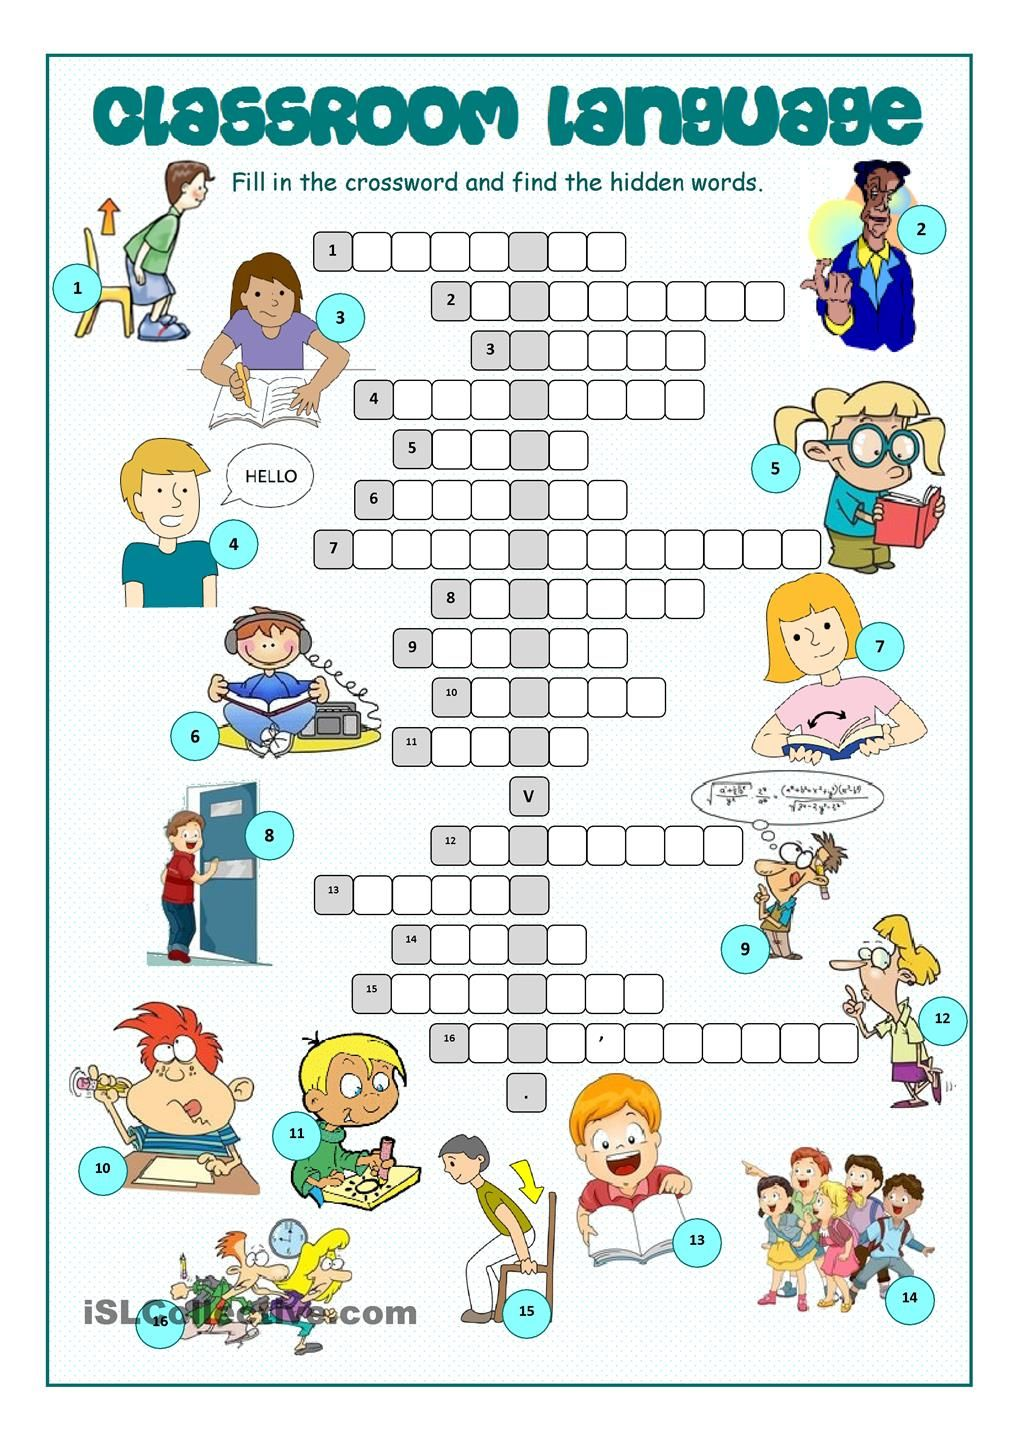 worksheet English Language Puzzles Worksheets classroom language crossword puzzle pinterest worksheet free esl printable works